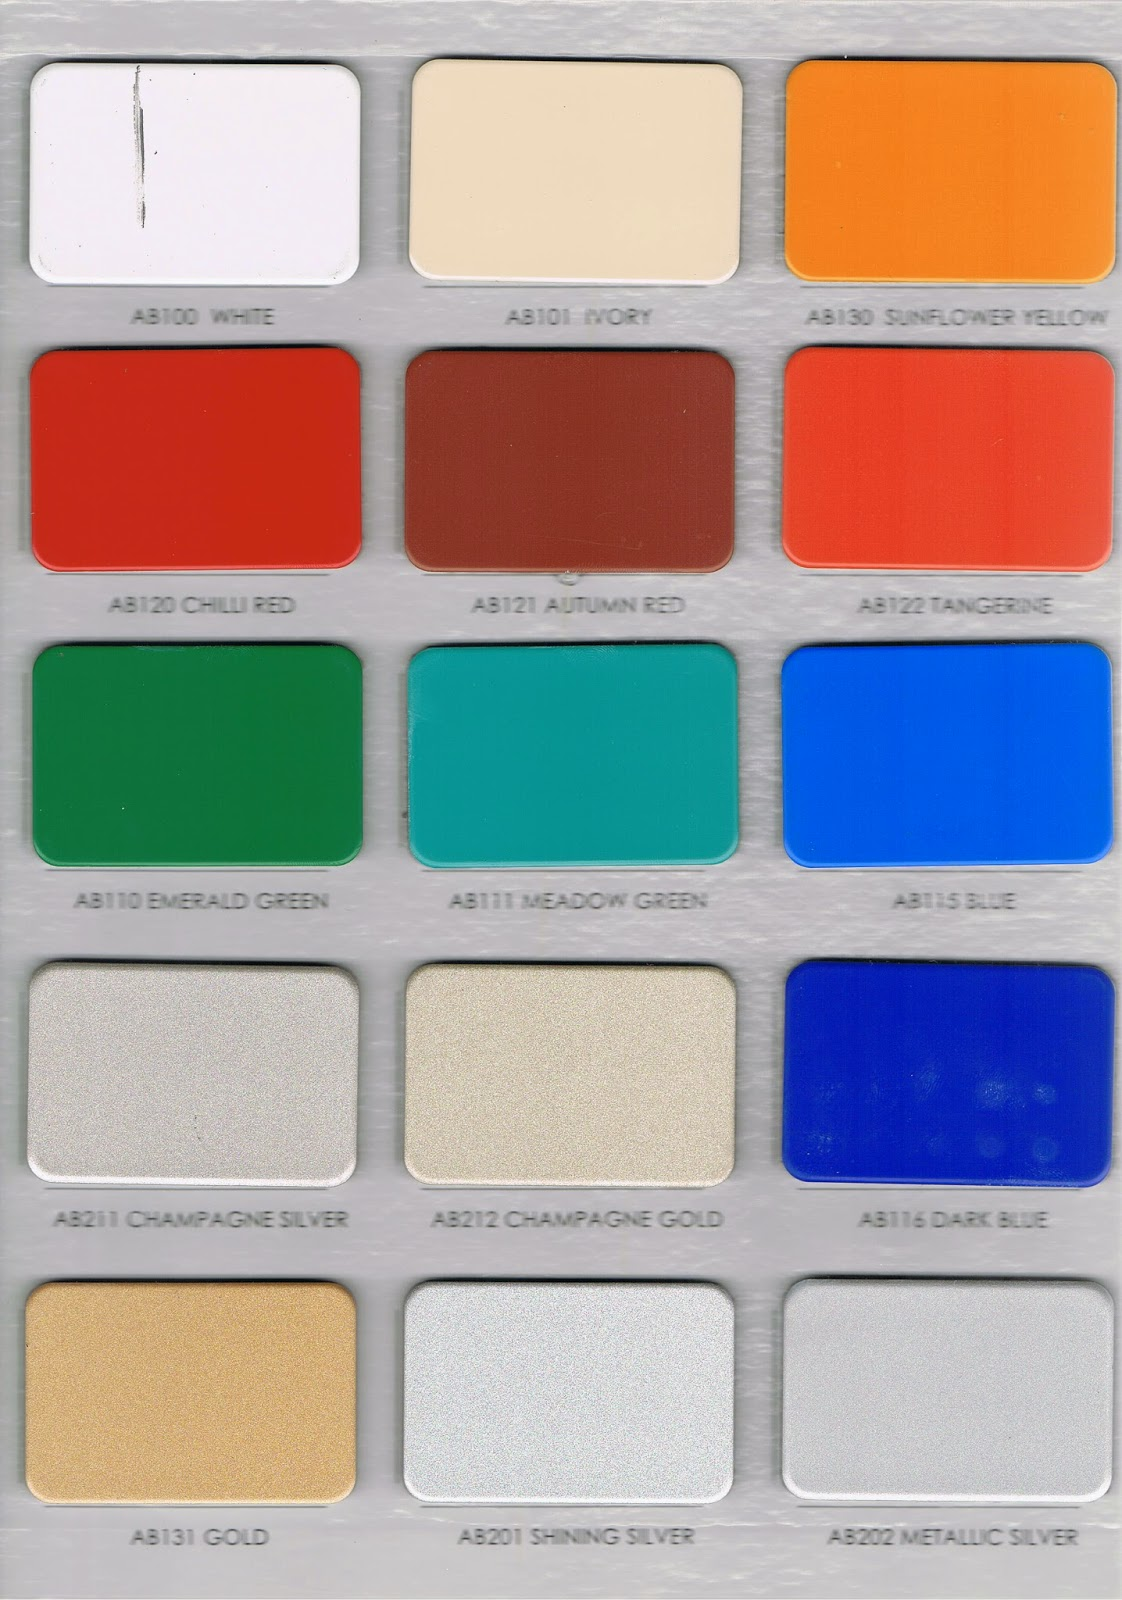 WARNA ALUMINIUM COMPOSITE PANEL ACP ALUMEBOND